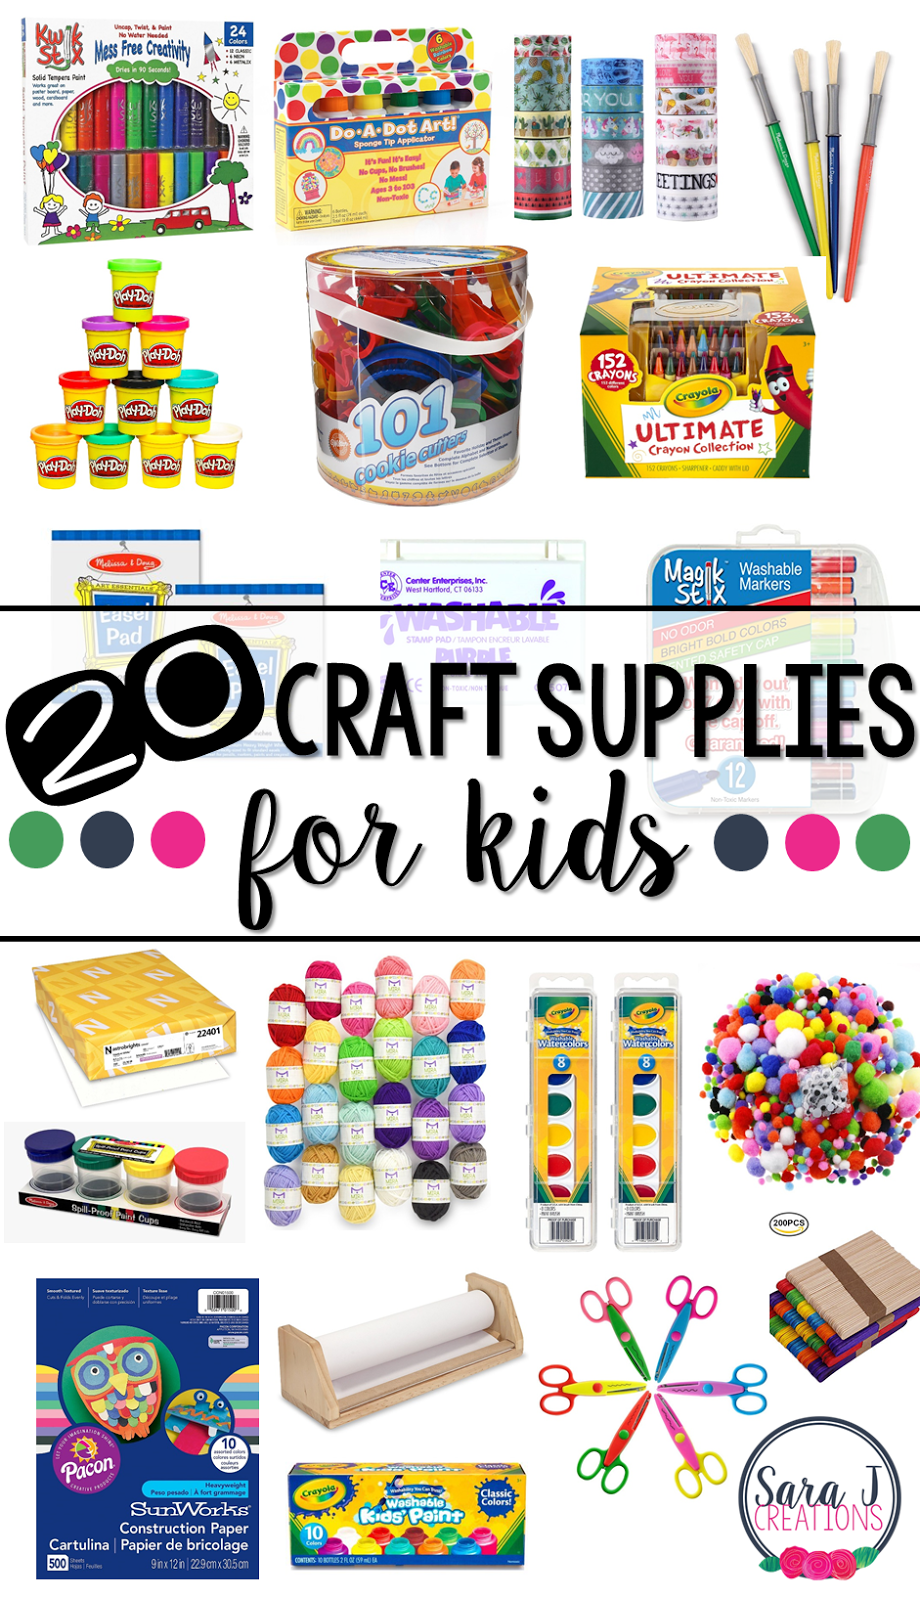 A showcase of our 20 favorite must have craft supplies for kids to be ready to make on the spot art projects. #artsupplies #craftsupplies #crafts #sarajcreations